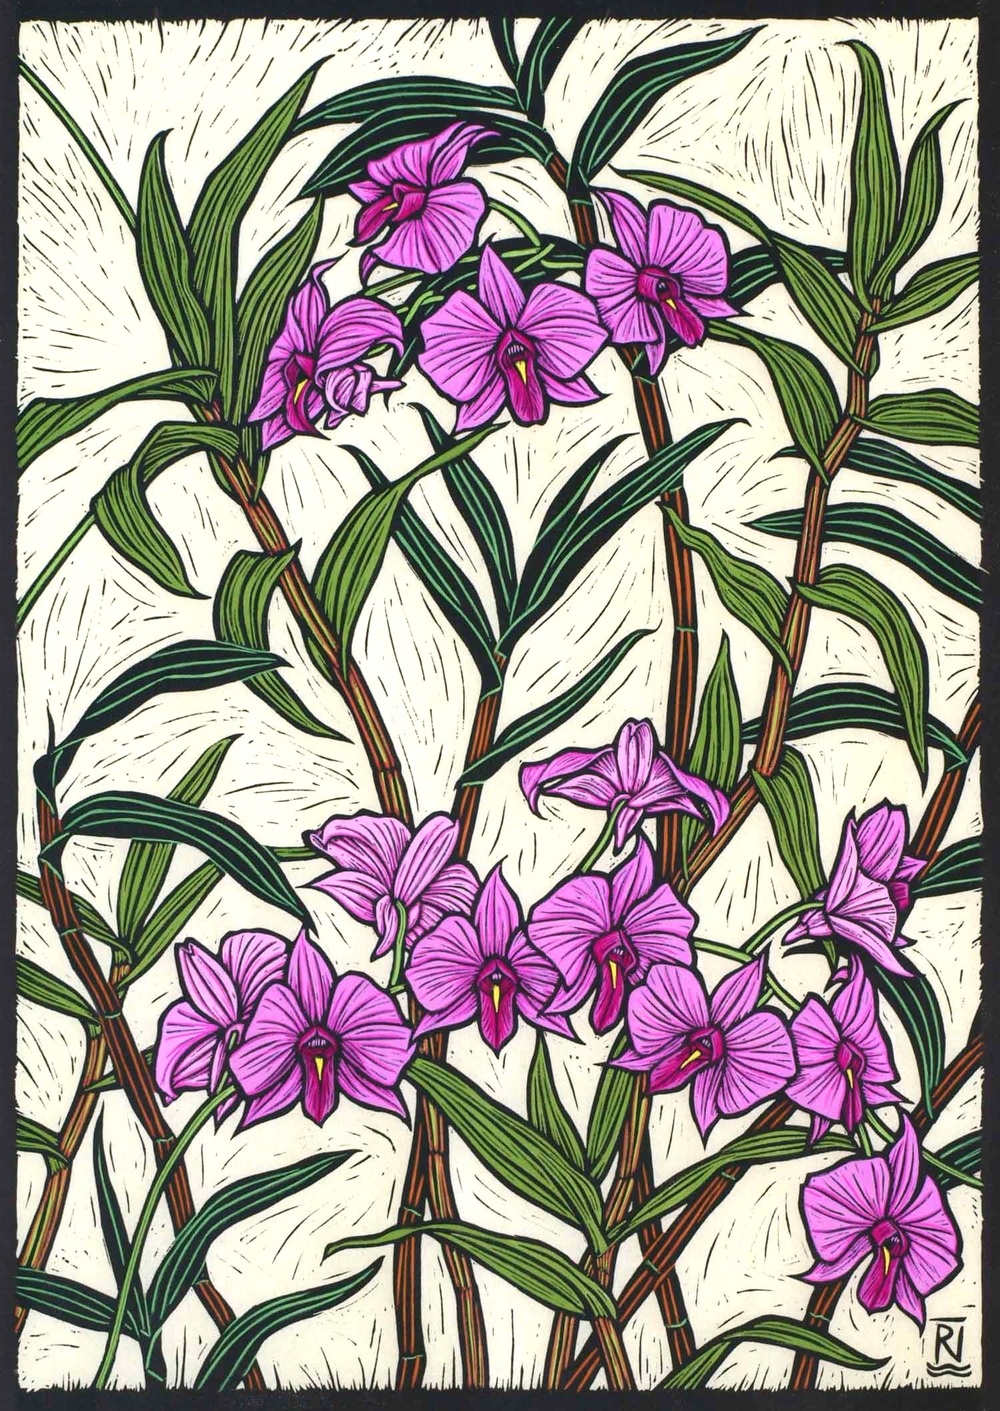 COOKTOWN ORCHID  47.5 X 33.5 CM    EDITION OF 50  HAND COLOURED LINOCUT ON HANDMADE JAPANESE PAPER  $1,050